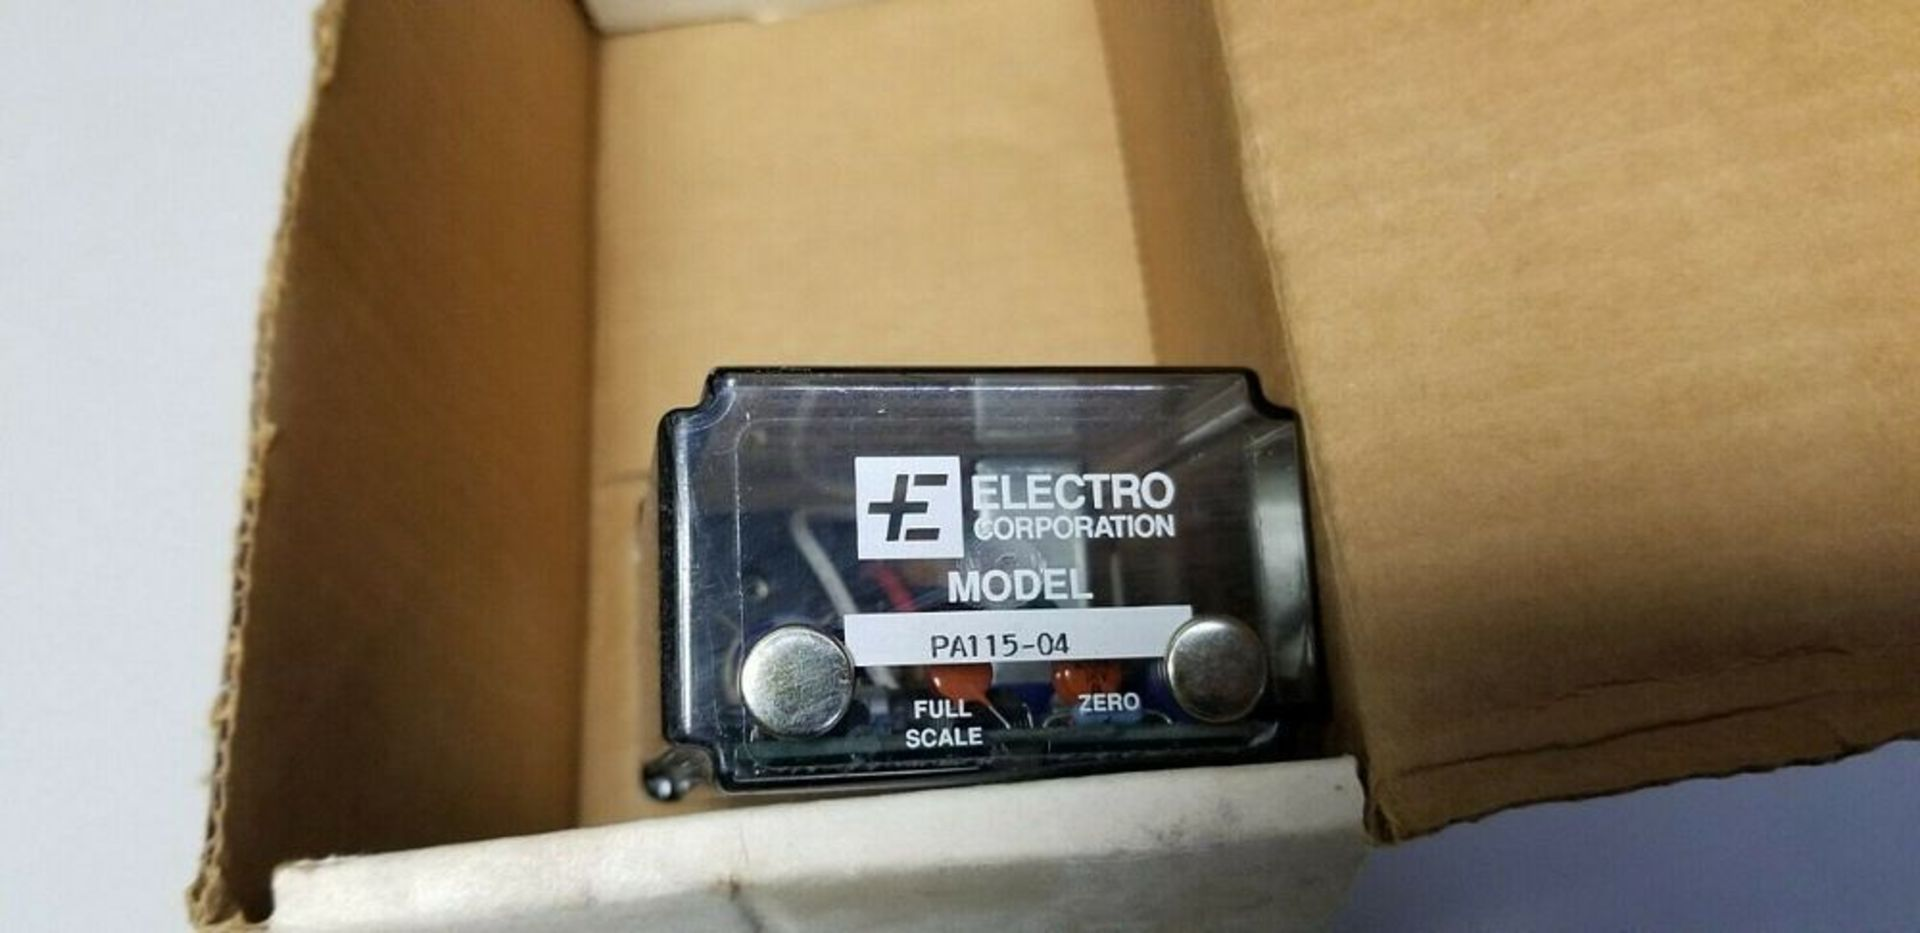 New Electro Electro-Mike Magnetic Displacement Transducer - Image 4 of 5